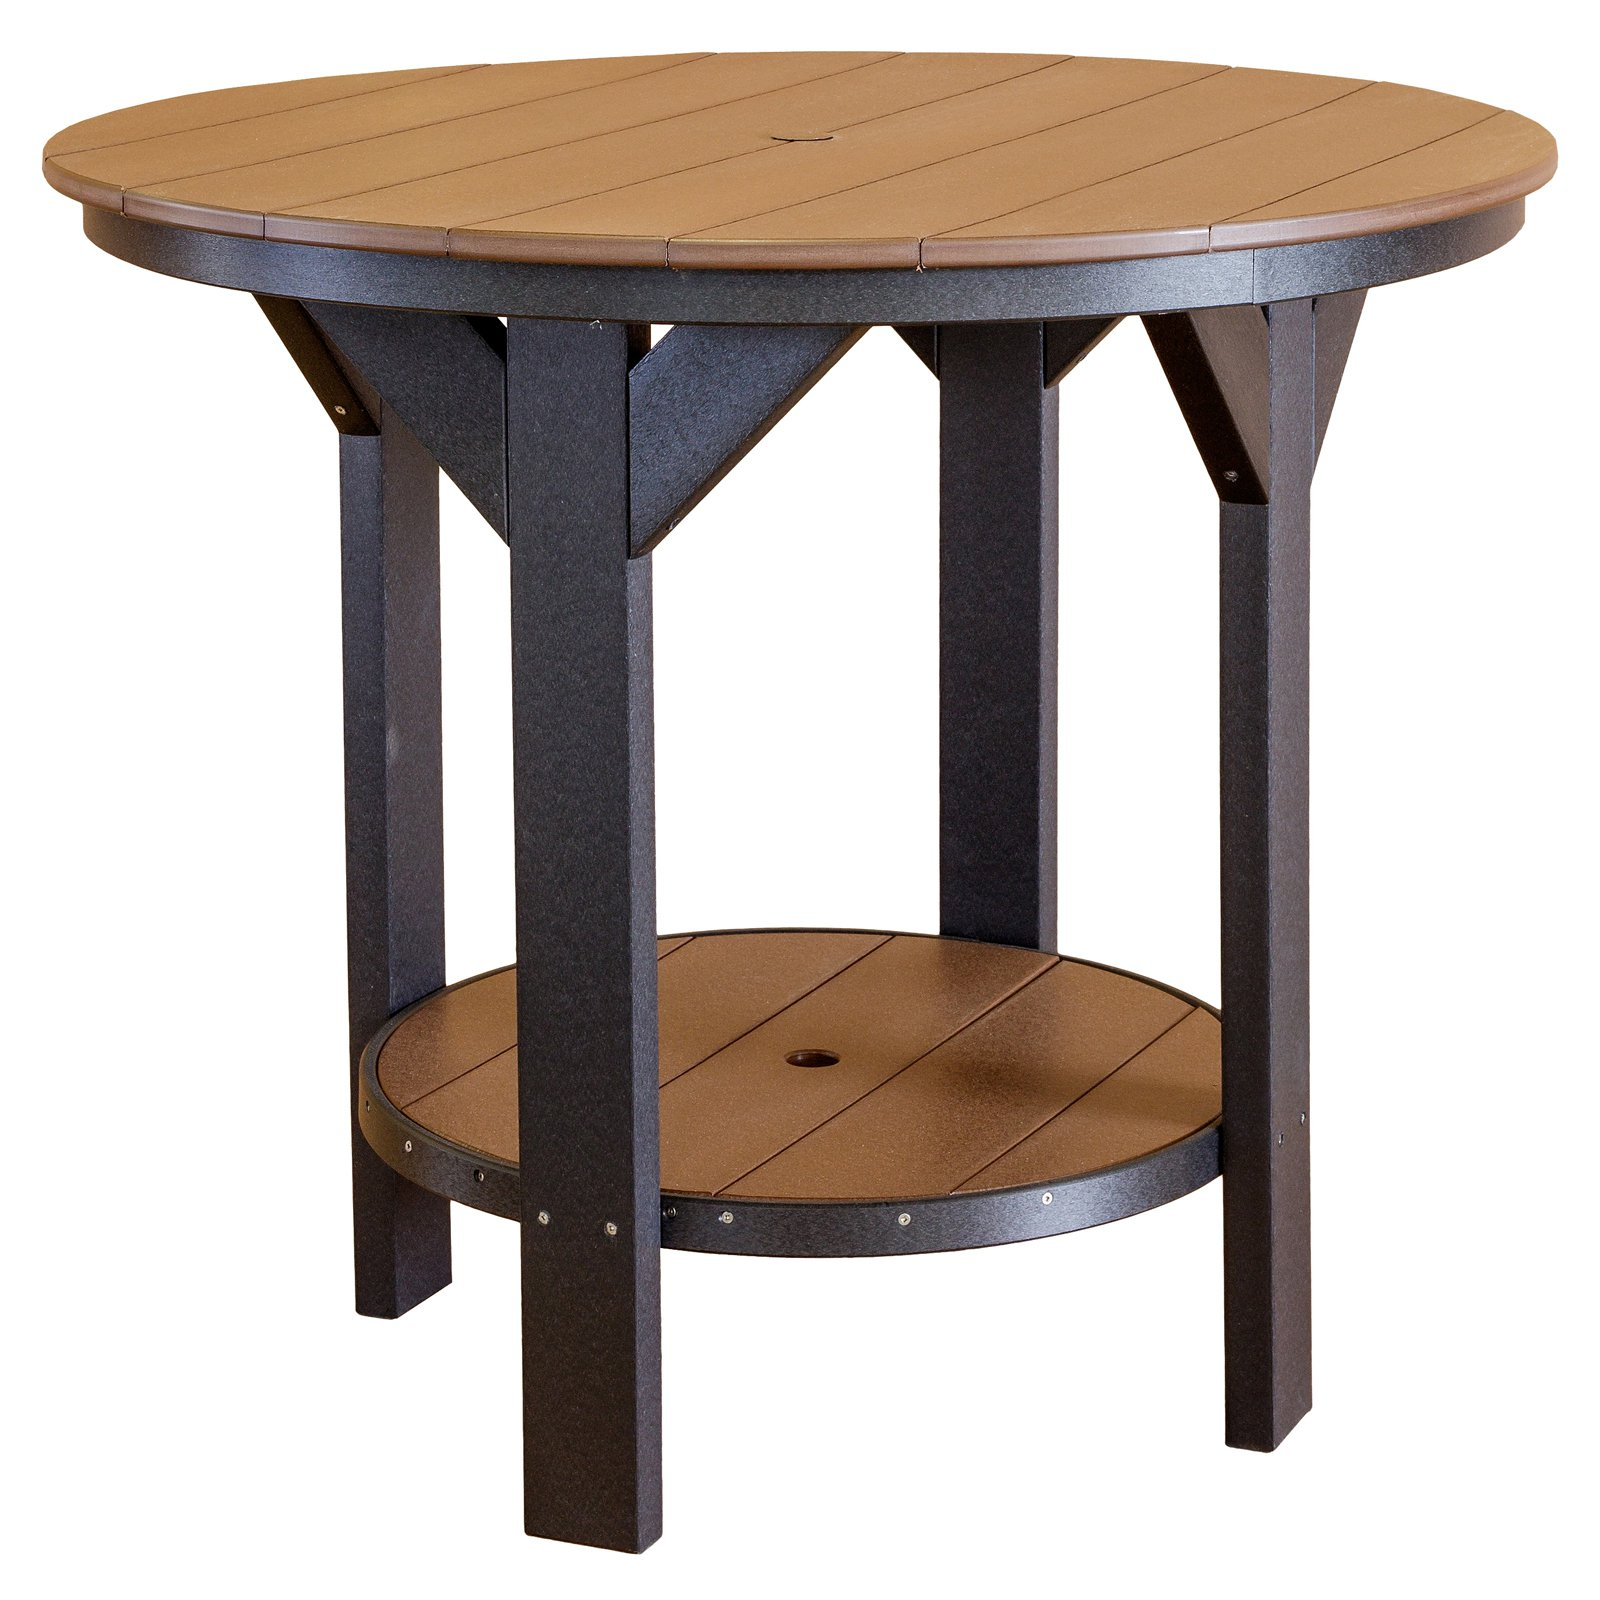 Wildridge Heritage Recycled Plastic 42 in. Round Patio Pub Table by Little Cottage Co